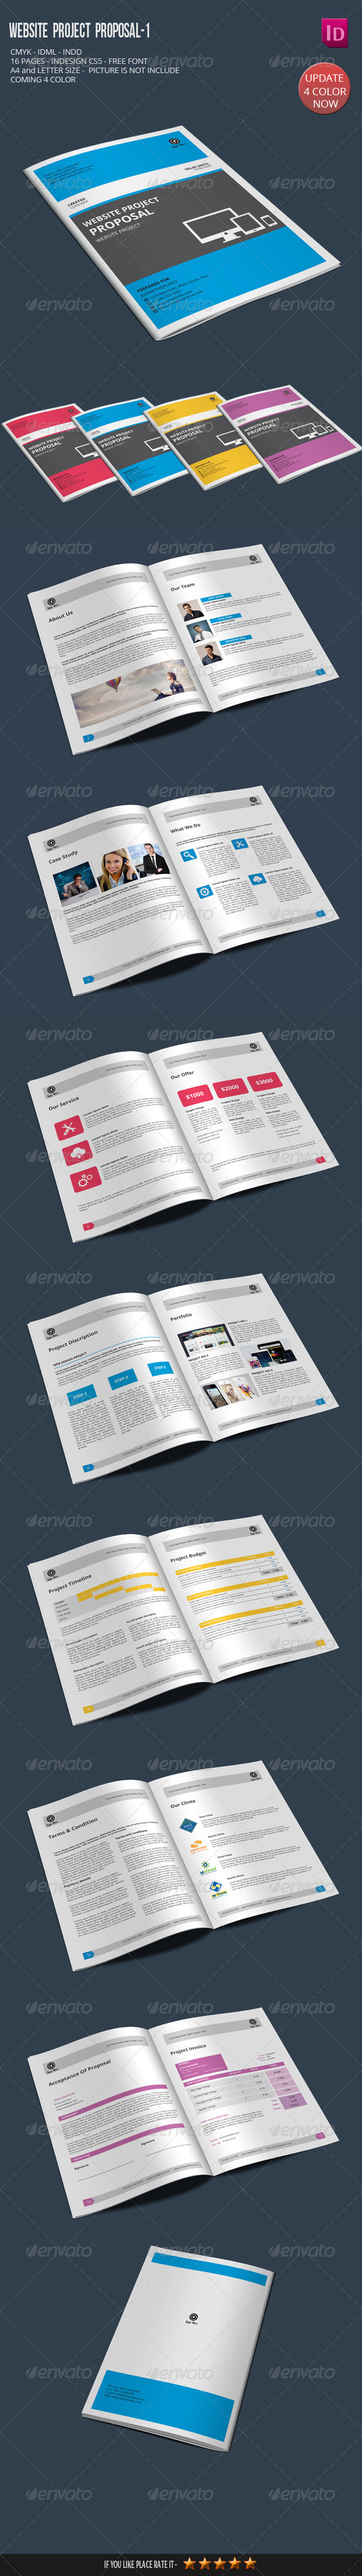 Website Project Proposal-1 - Proposals & Invoices Stationery